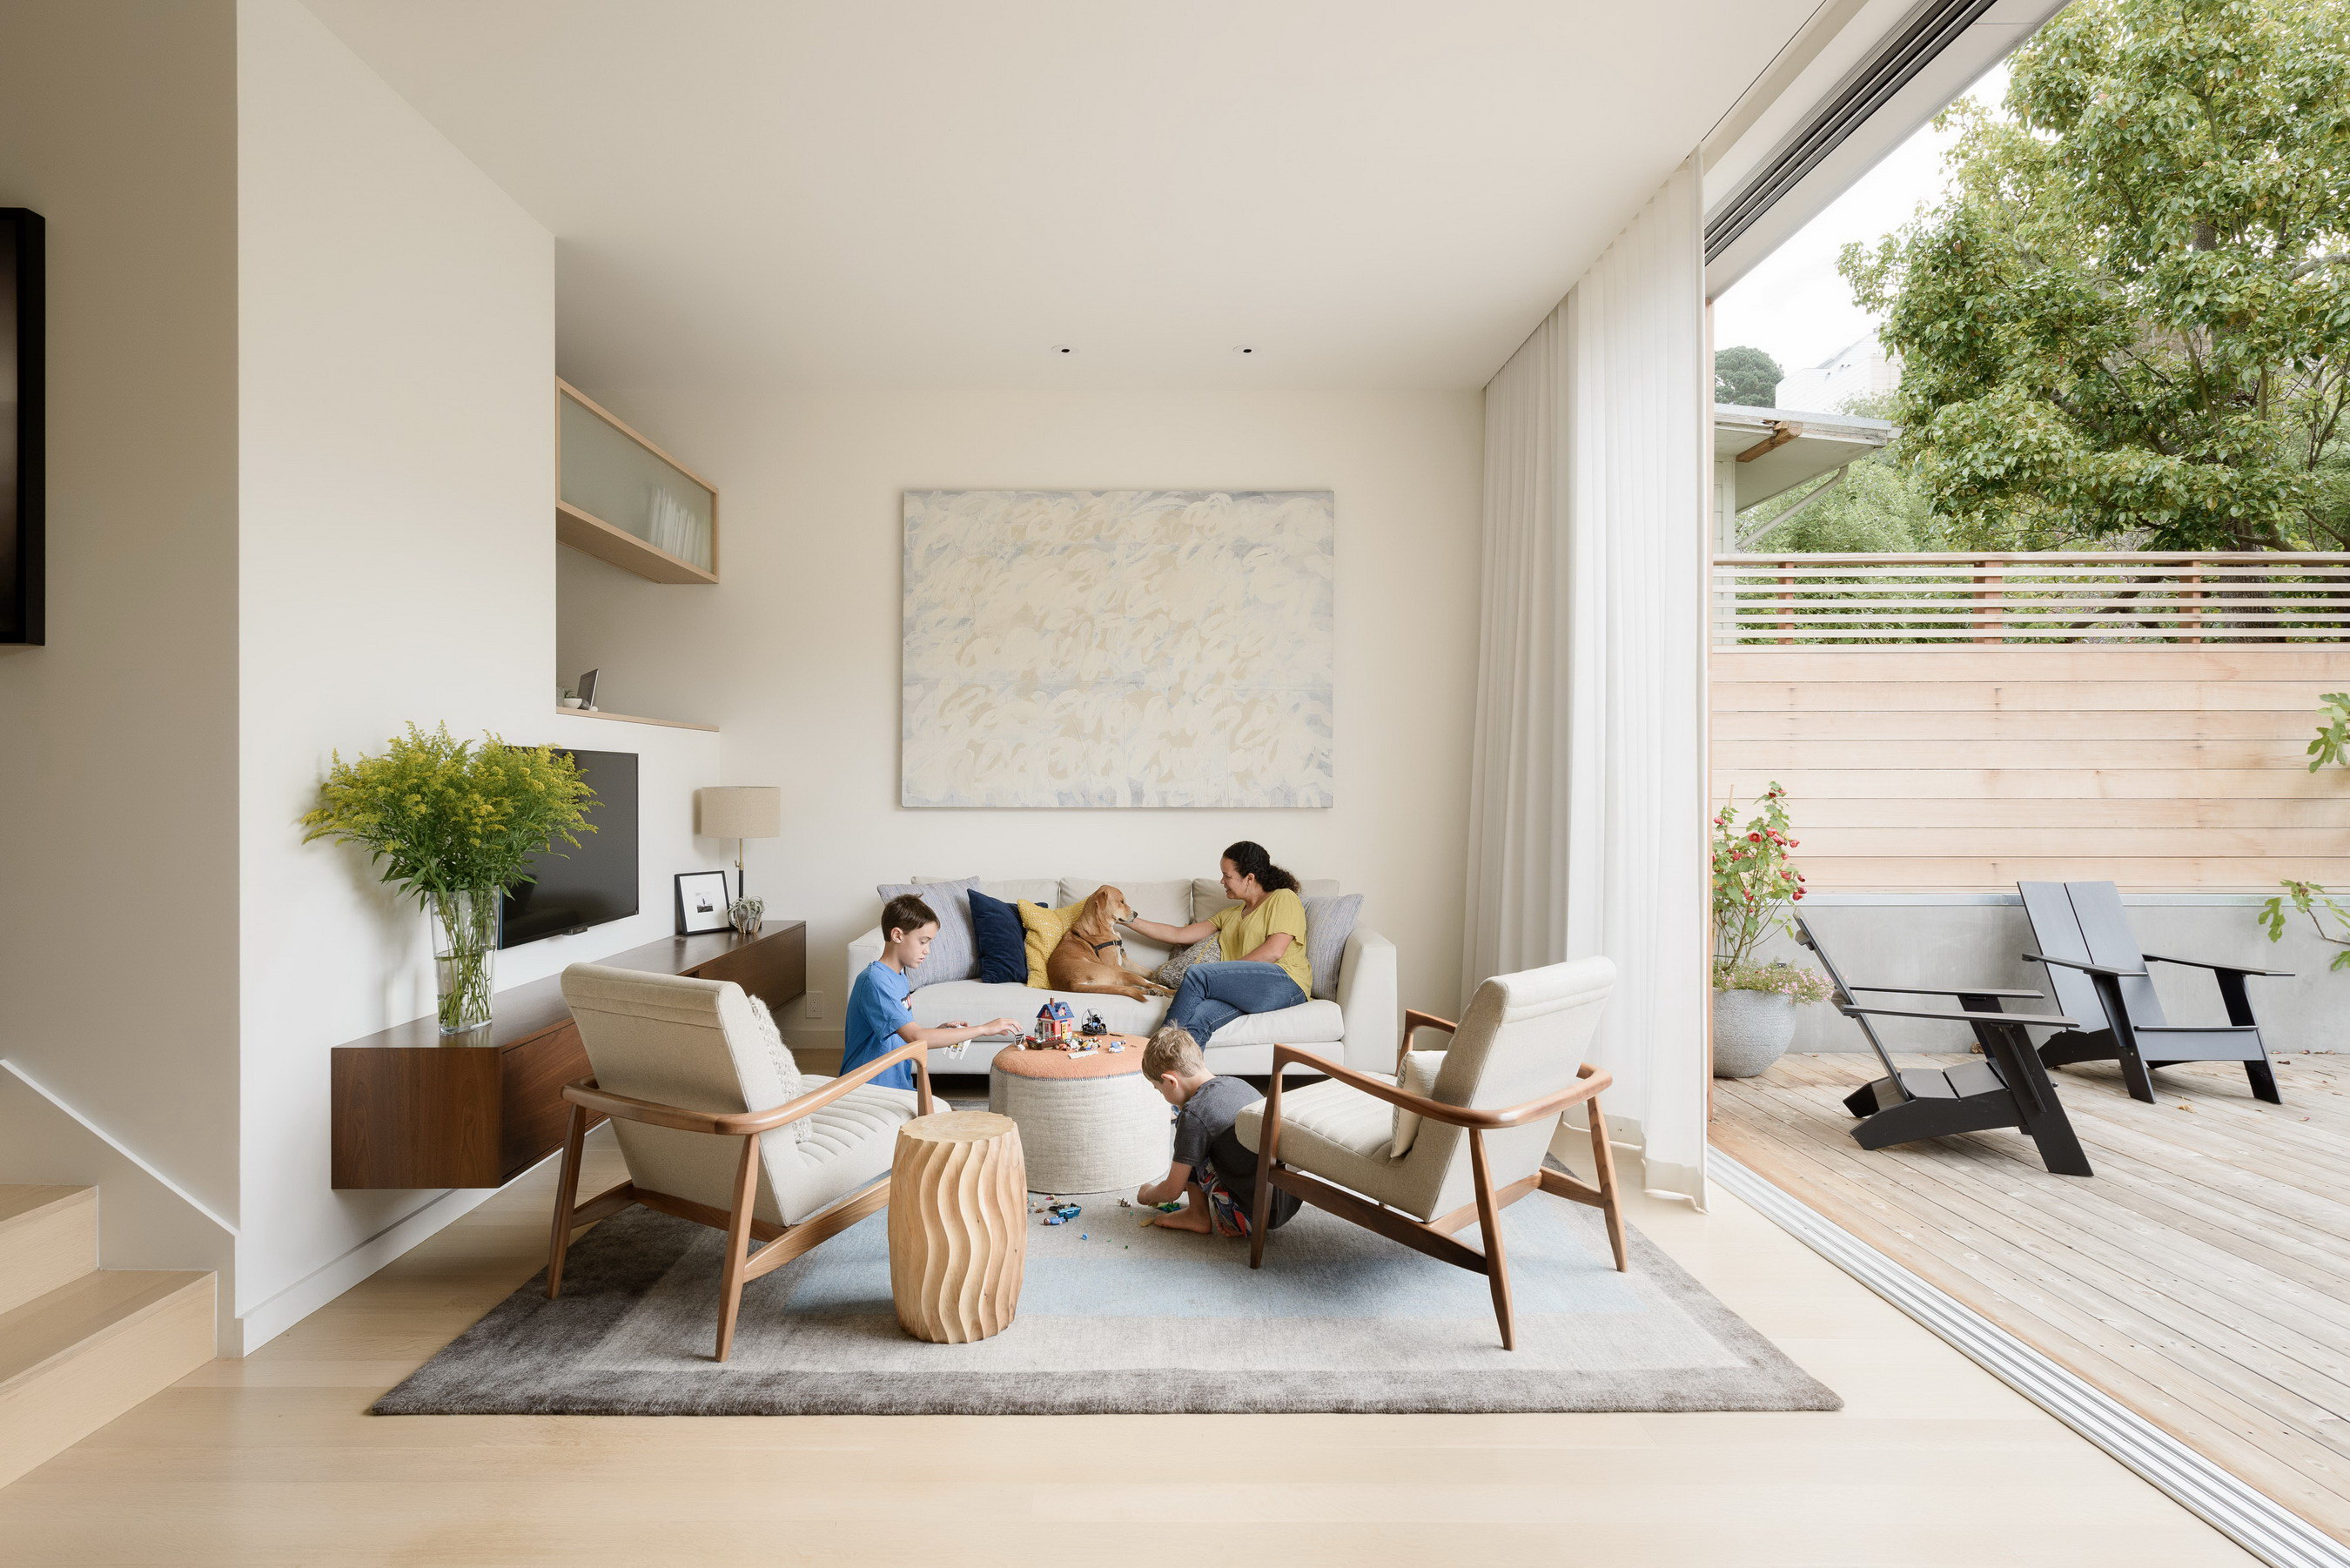 Fitty Wun | Family House by Feldman Architecture